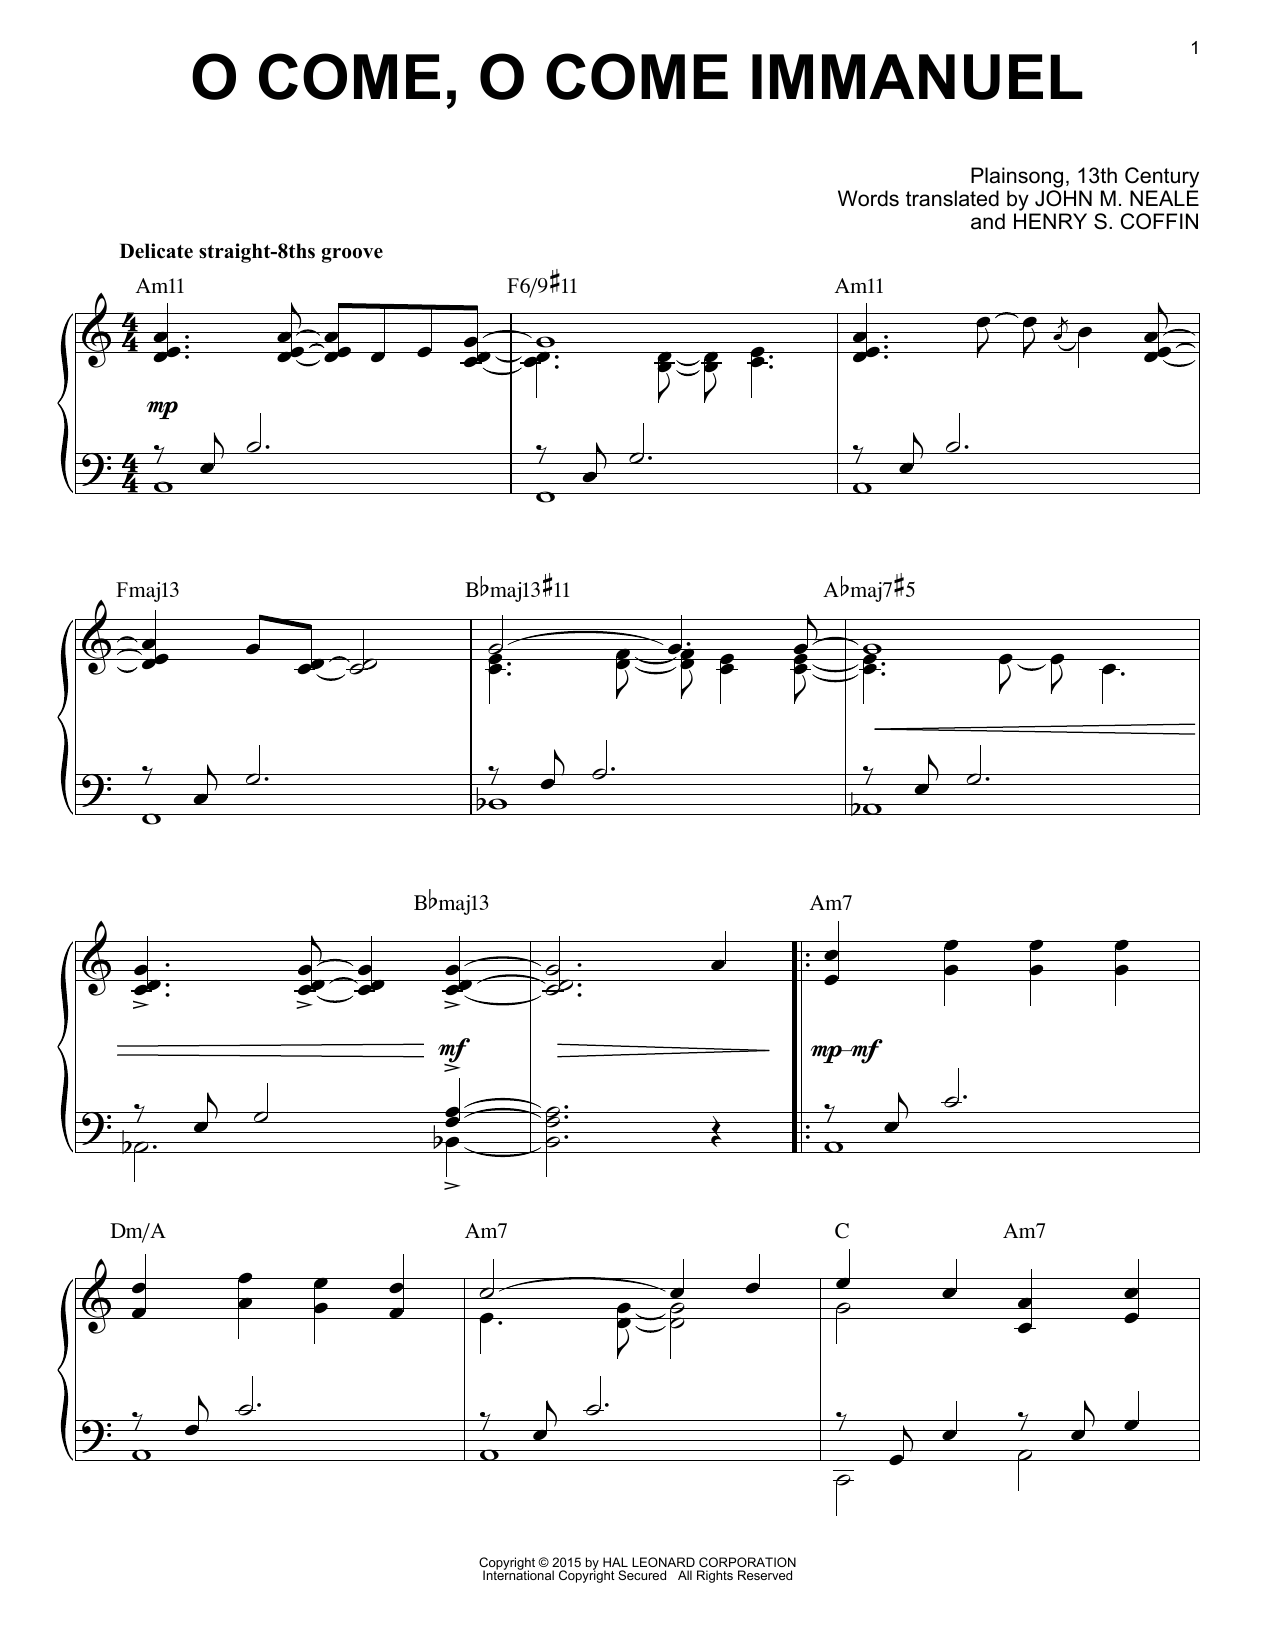 John M. Neale (v. 1,2) O Come, O Come Immanuel [Jazz version] (arr. Brent Edstrom) sheet music notes and chords. Download Printable PDF.